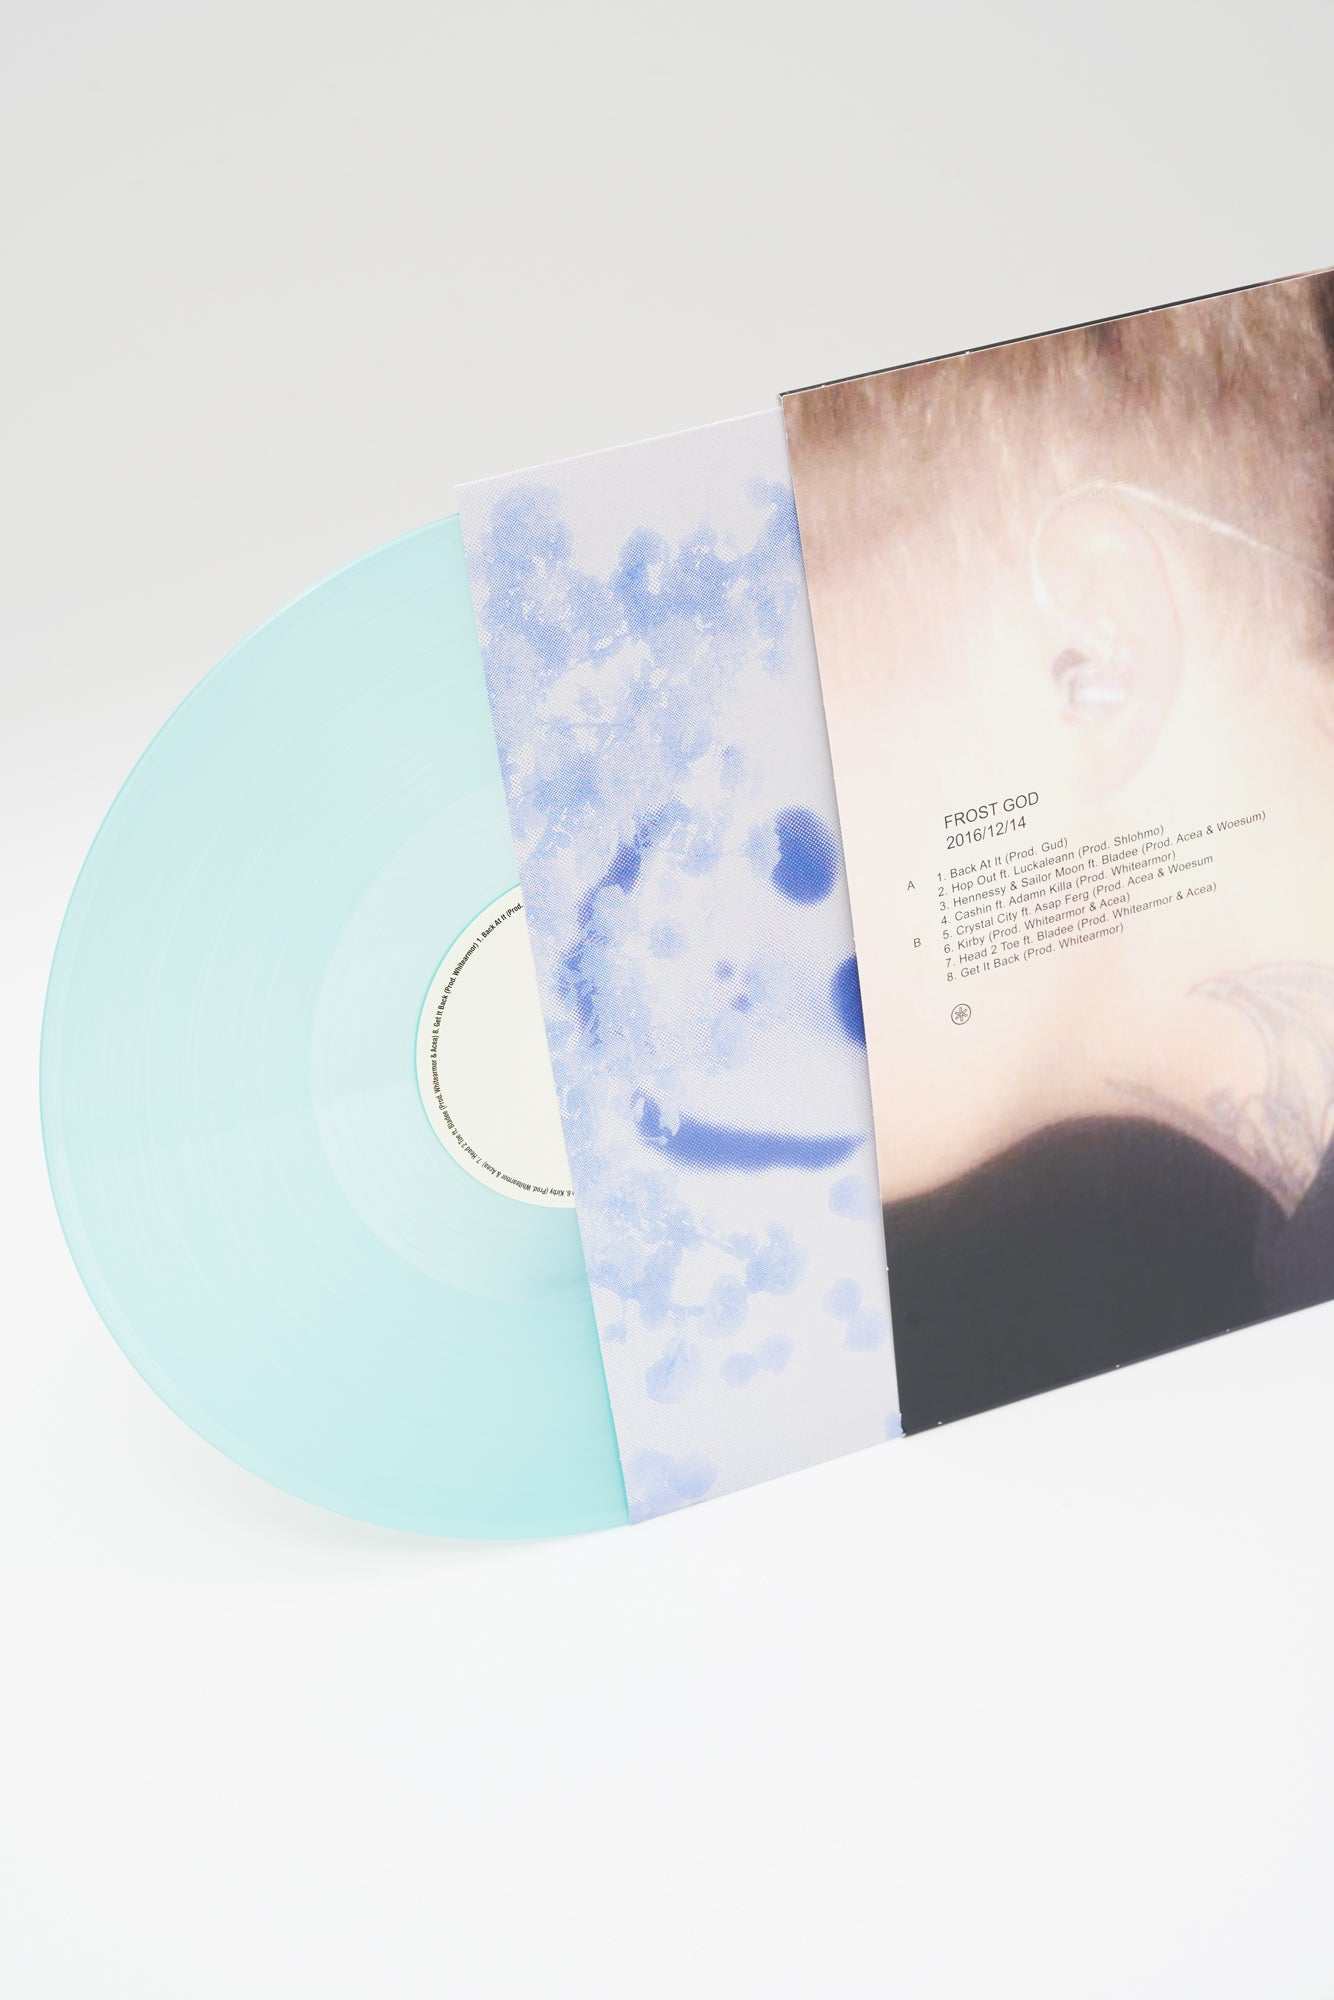 FROST GOD LP (TRANSPARENT BLUE)